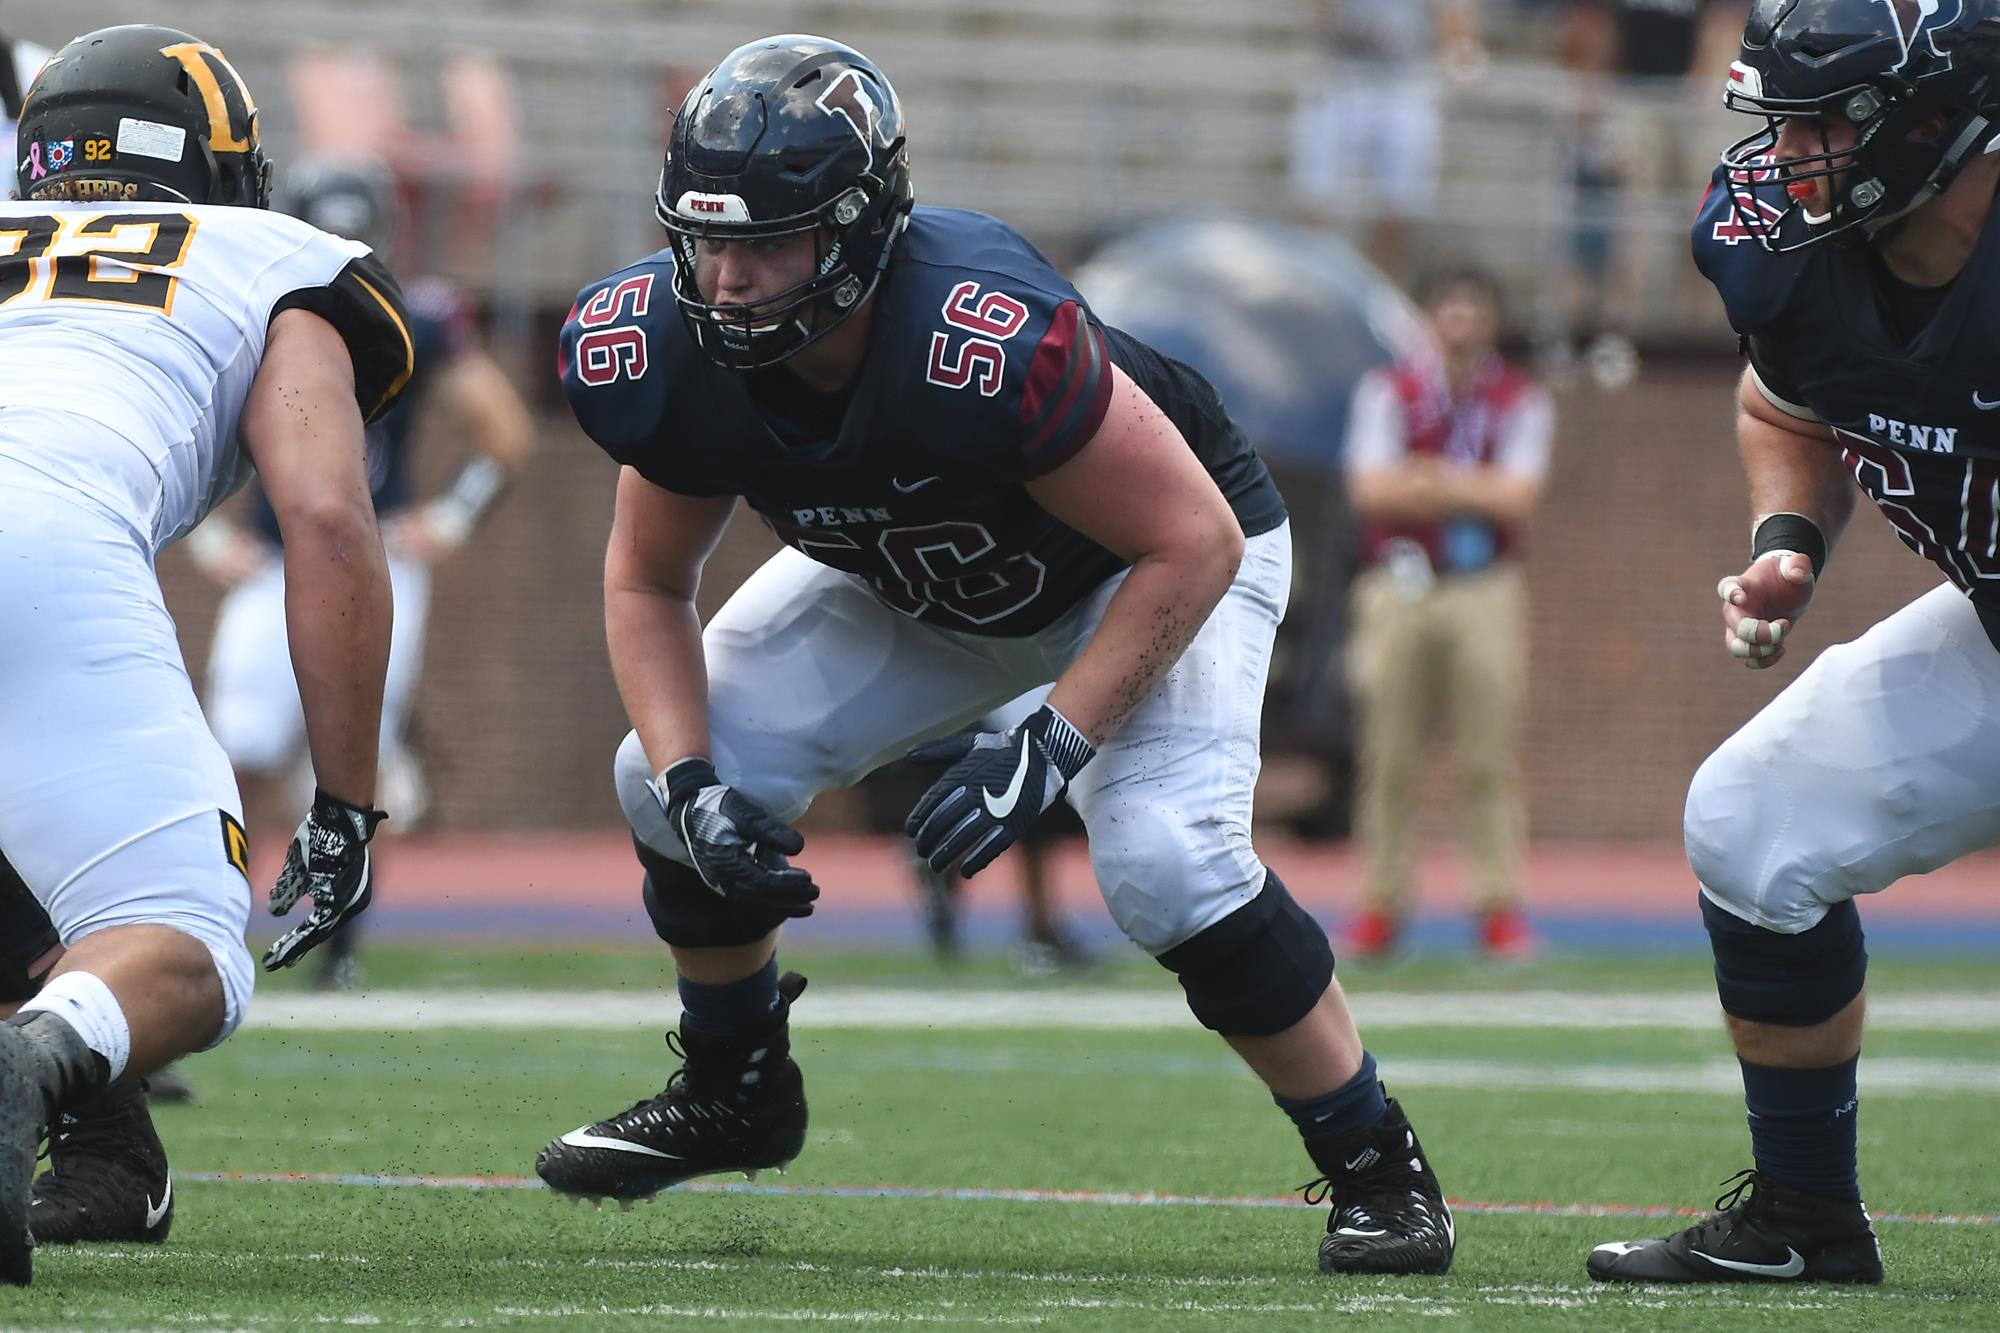 Jeff Gibbs - OL, University of Pennsylvania